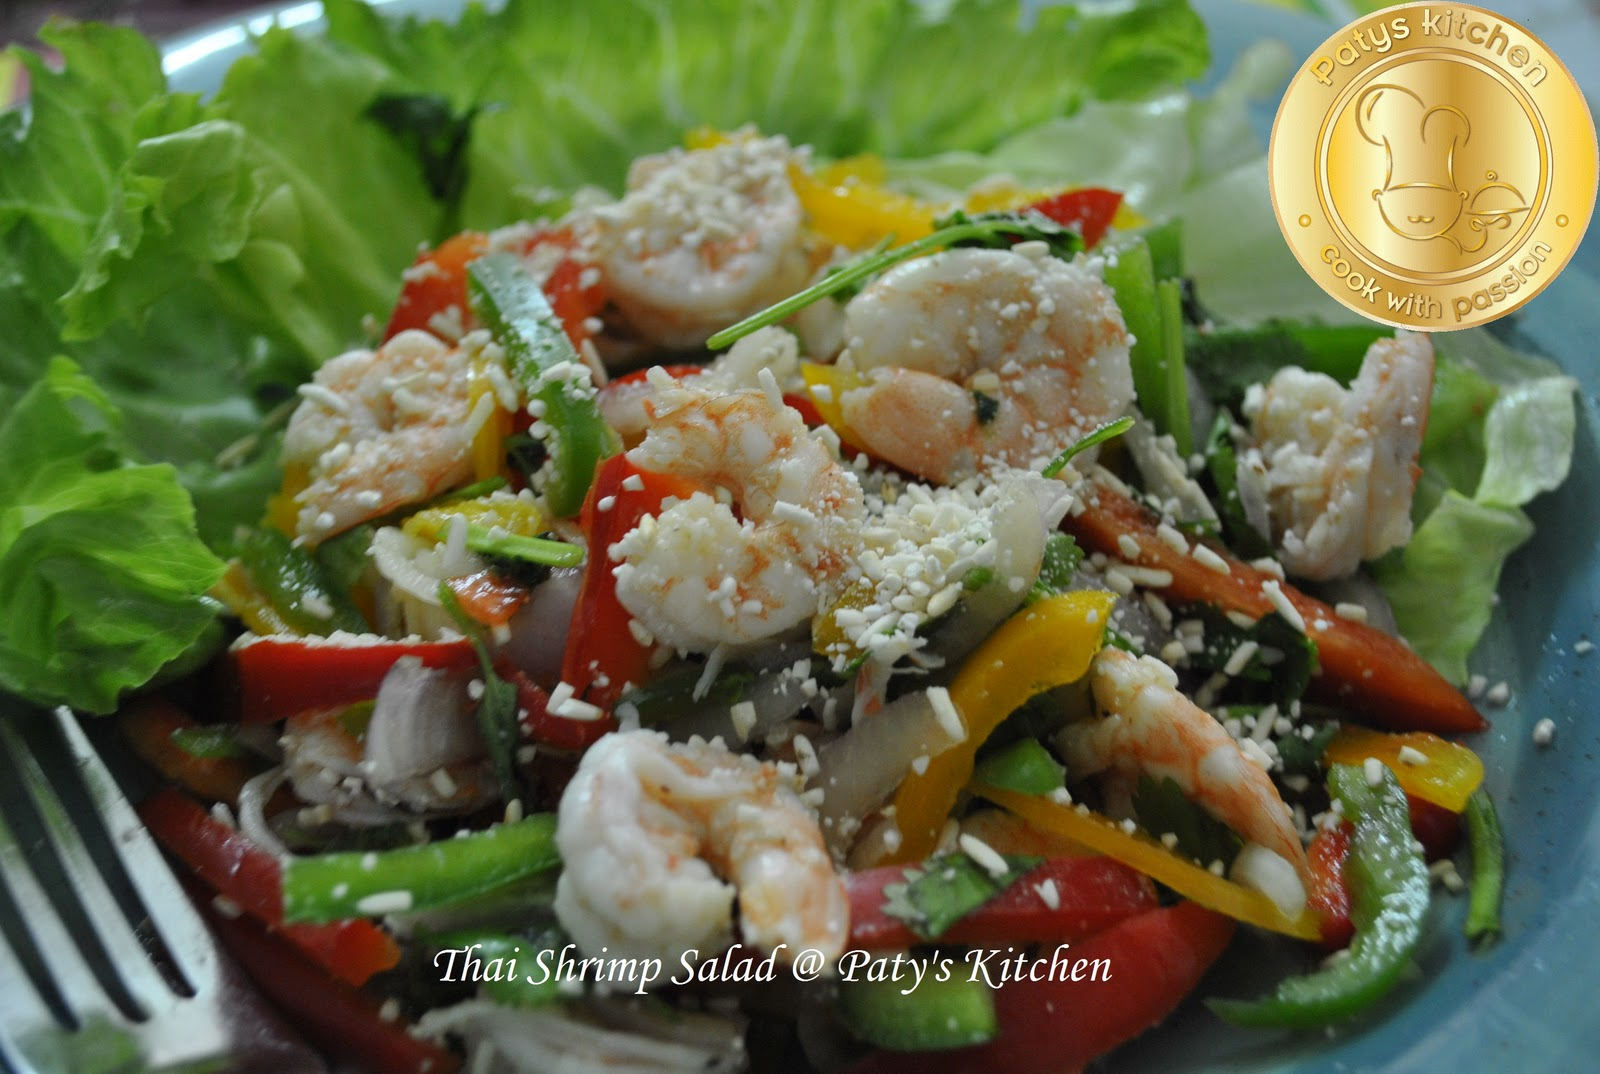 PATY'S KITCHEN: THAI SHRIMP SALAD / SALAD AKA KERABU UDANG THAI